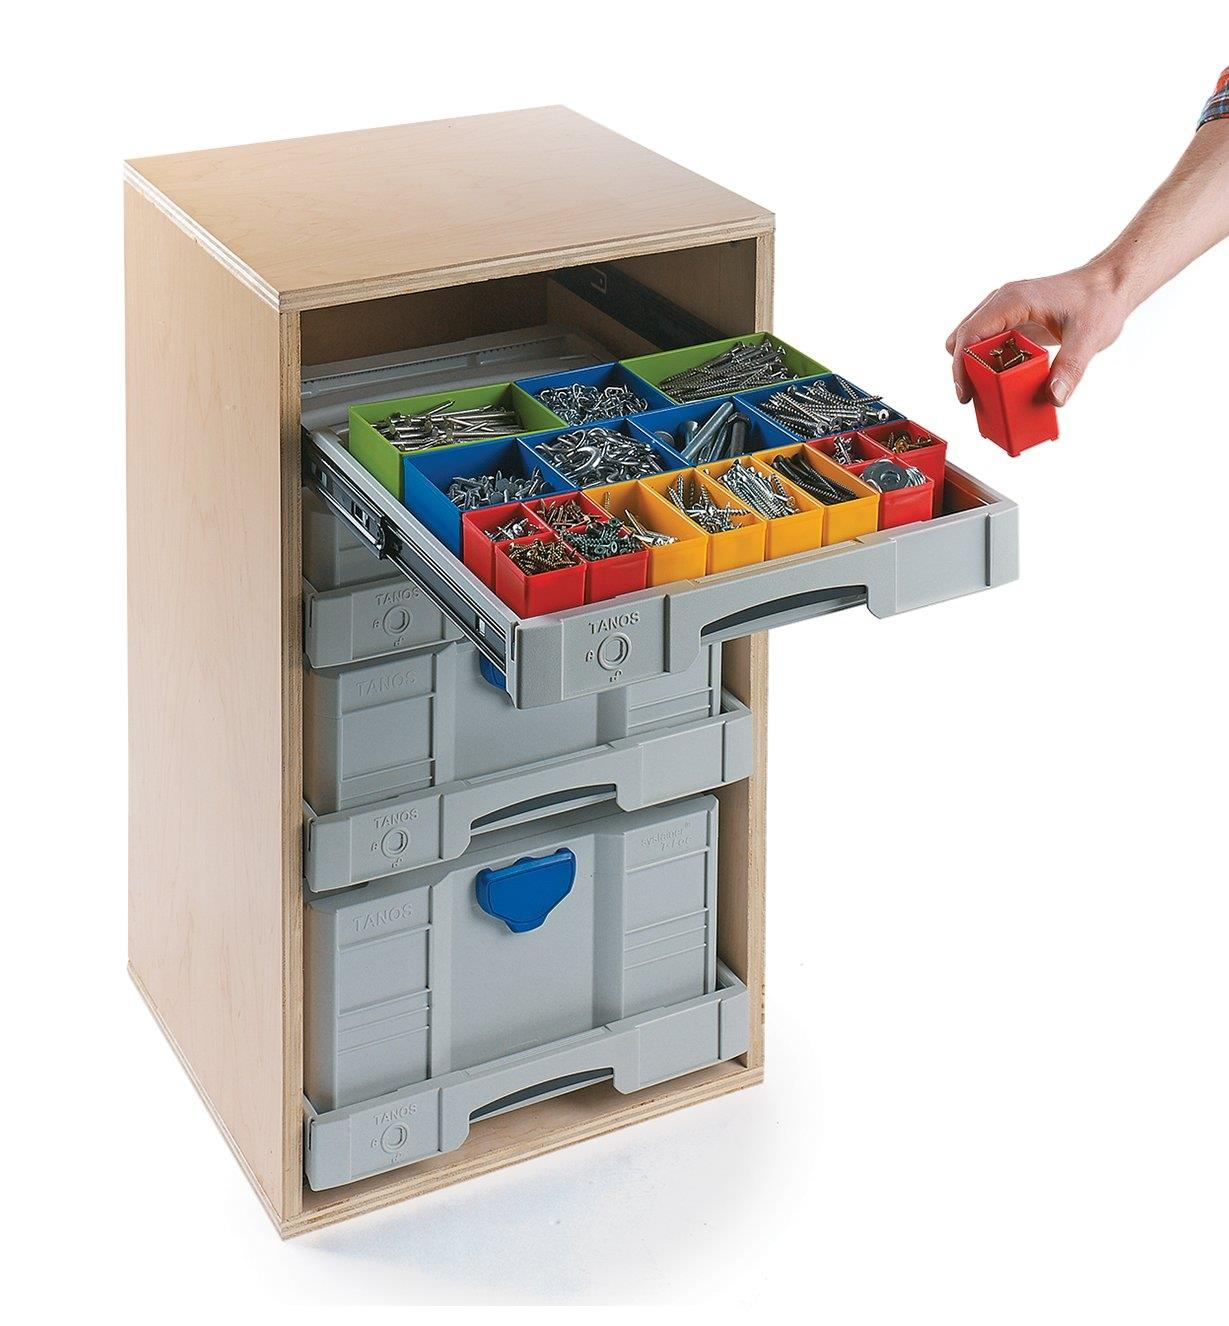 SYS-AZ Systainer Storage Drawer